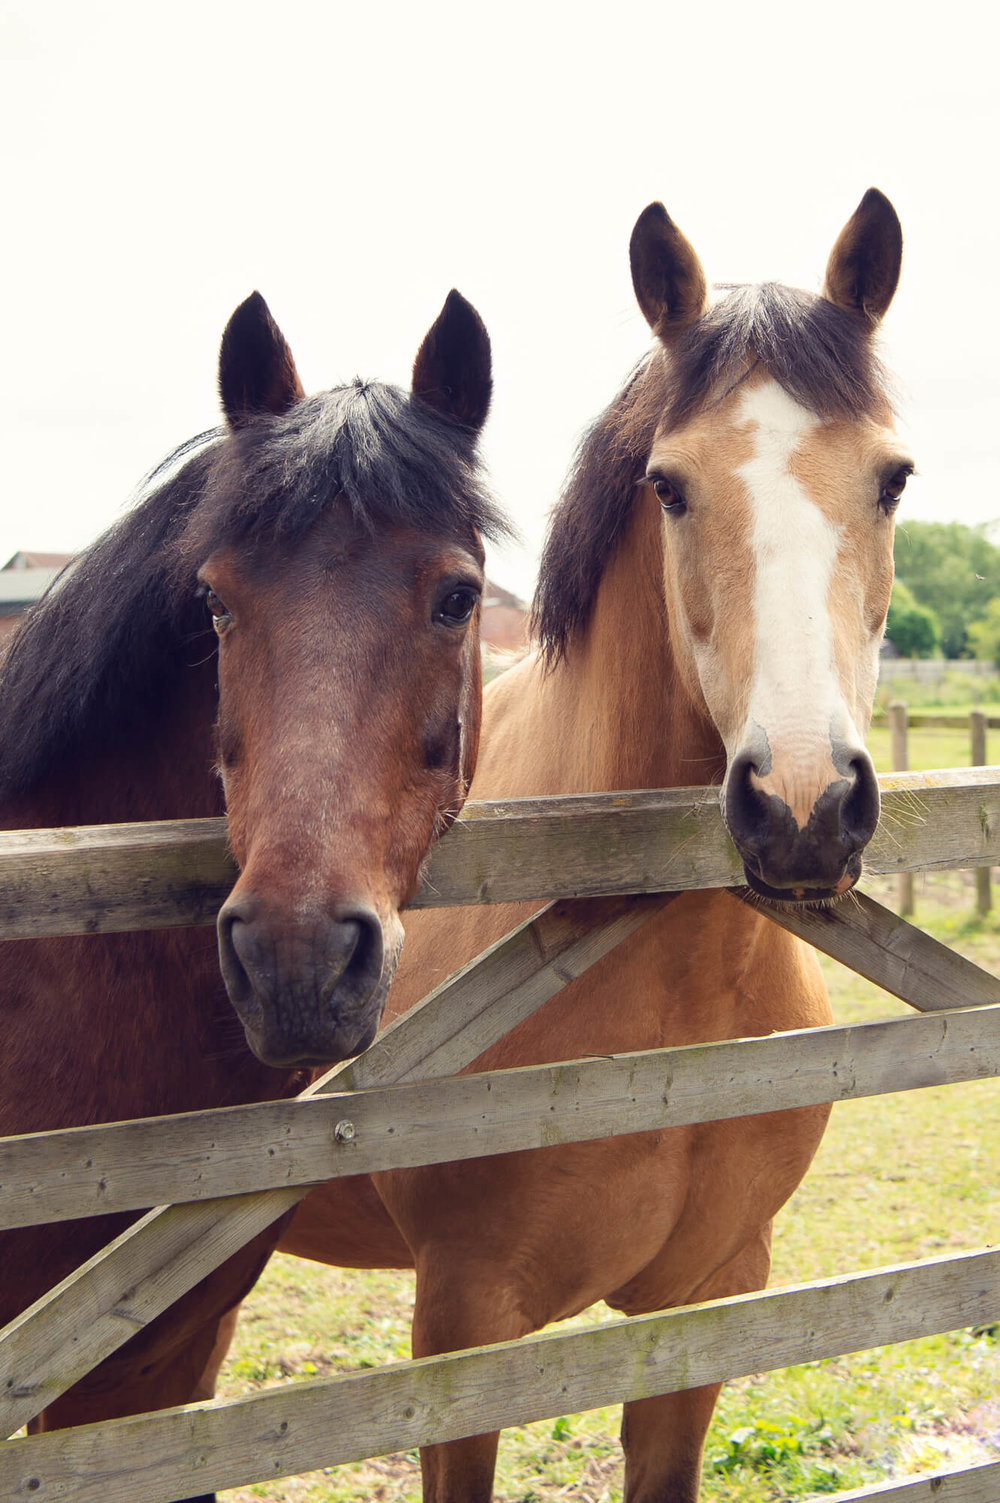 The Horses - Active ParticipantsOur horses are experienced and have a proven record in creating safe, effective, profound, delightful Equine Guided Learning events. We take pride in the fact that they are relaxed and happy and willing to show up for the work.